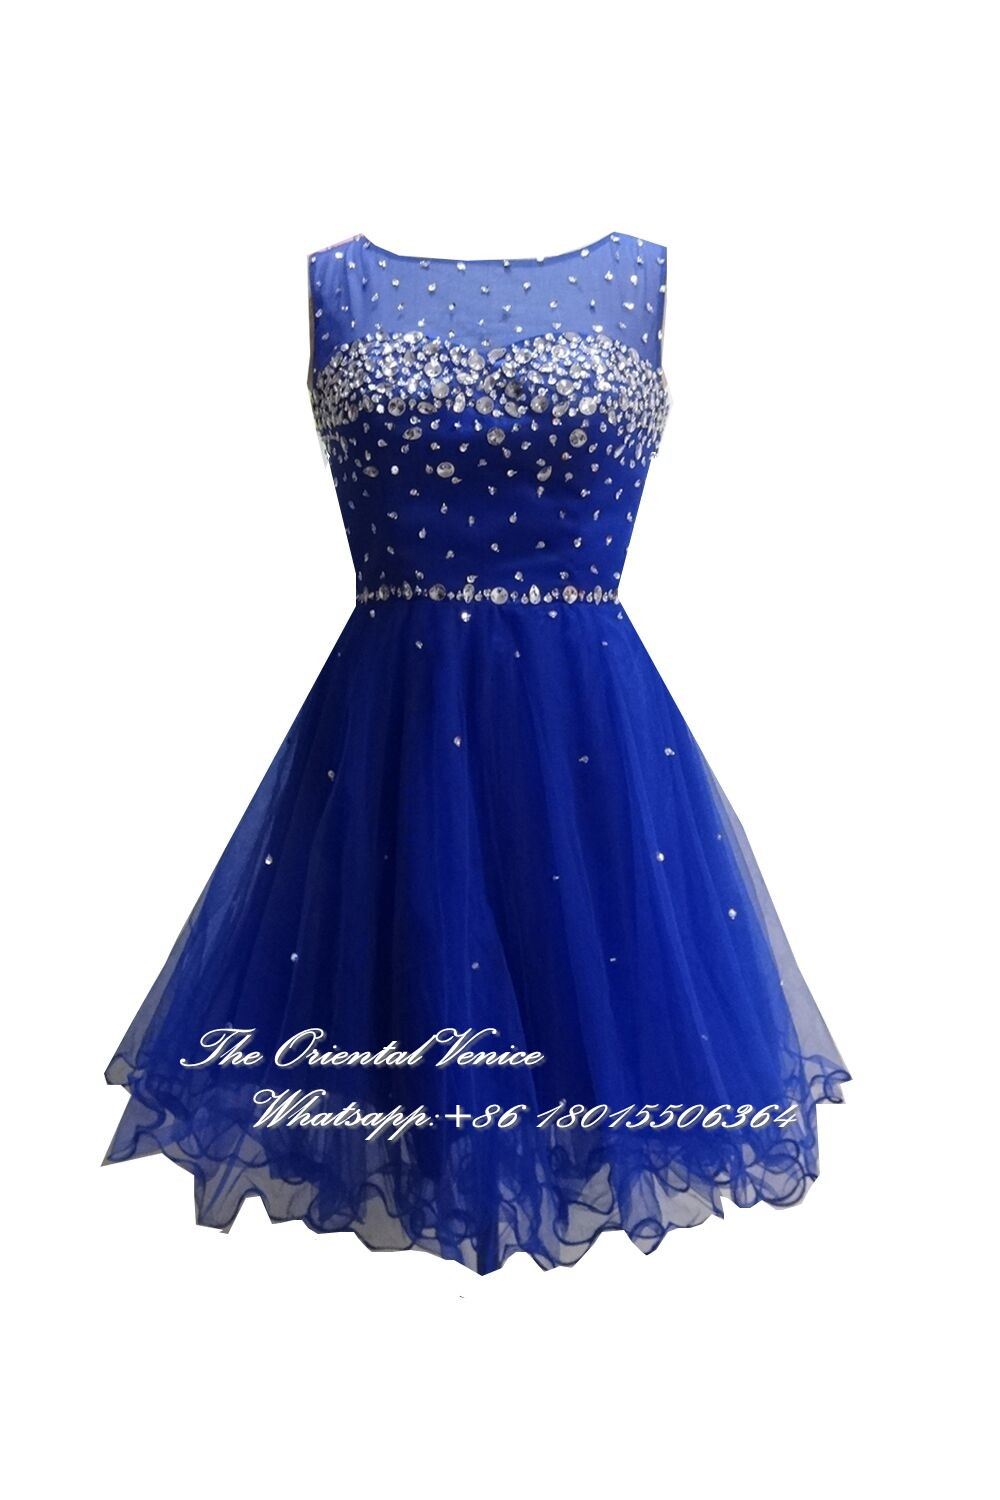 Compare Prices on High School Prom Dress- Online Shopping/Buy Low ...